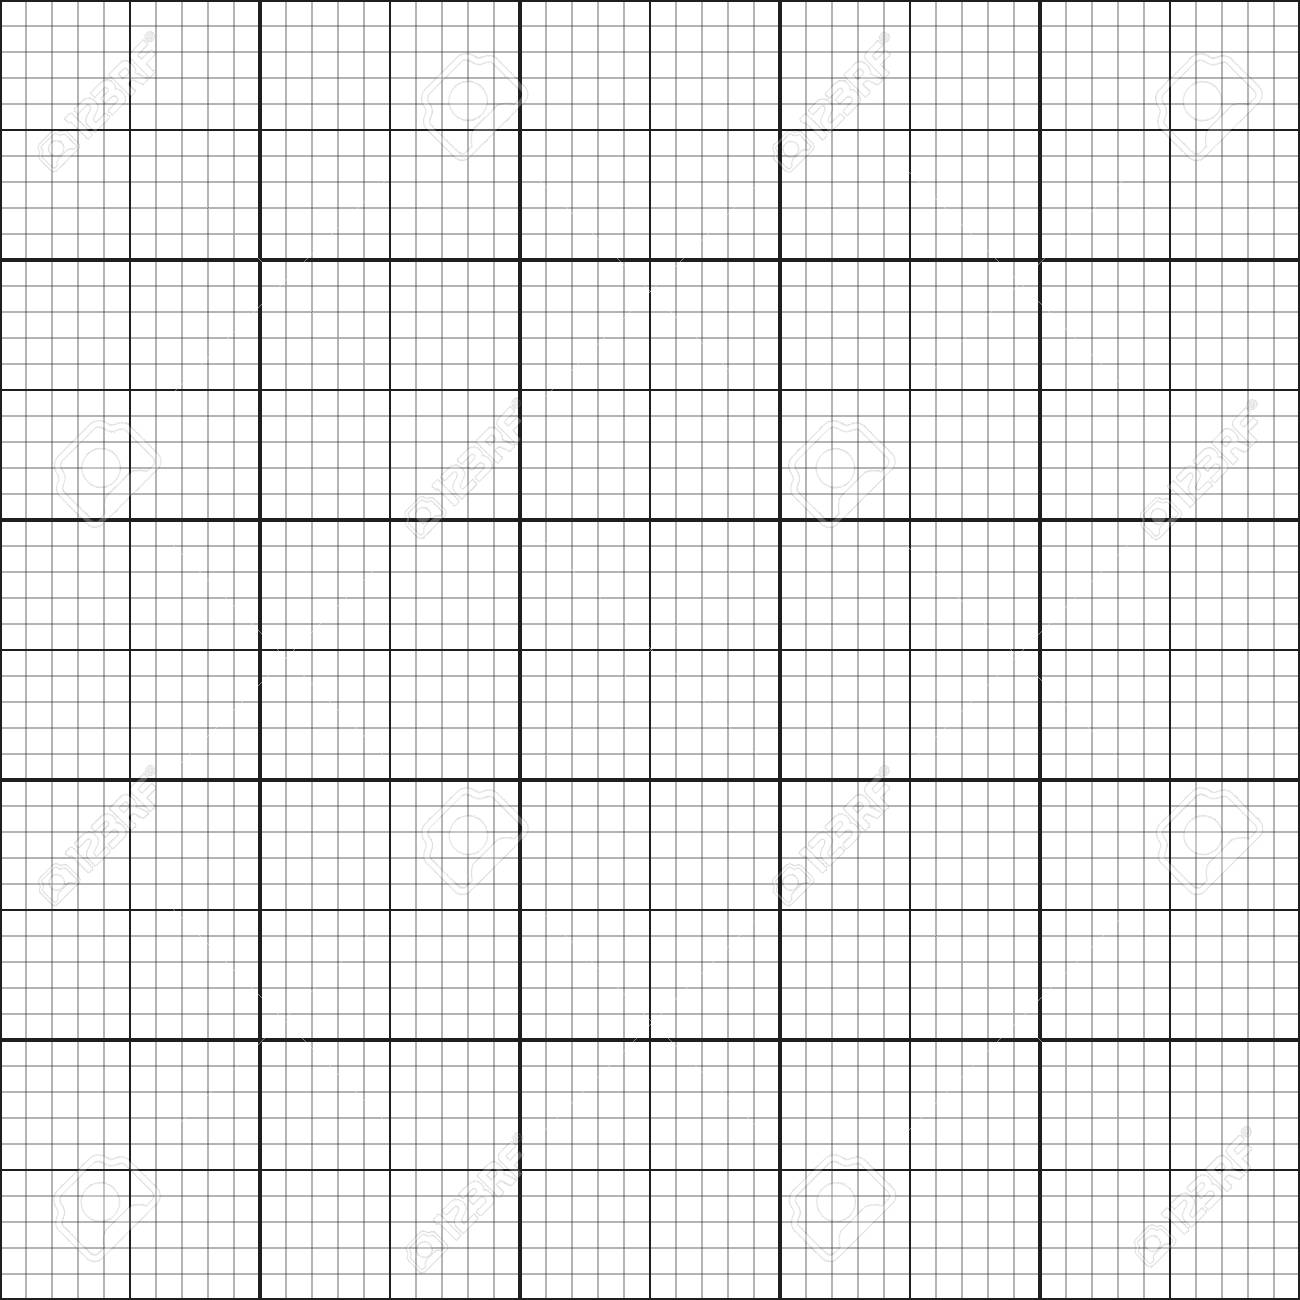 Seamless coordinate grid background for getting graphics blueprint seamless coordinate grid background for getting graphics blueprint or graph infographics template vector seamless malvernweather Gallery